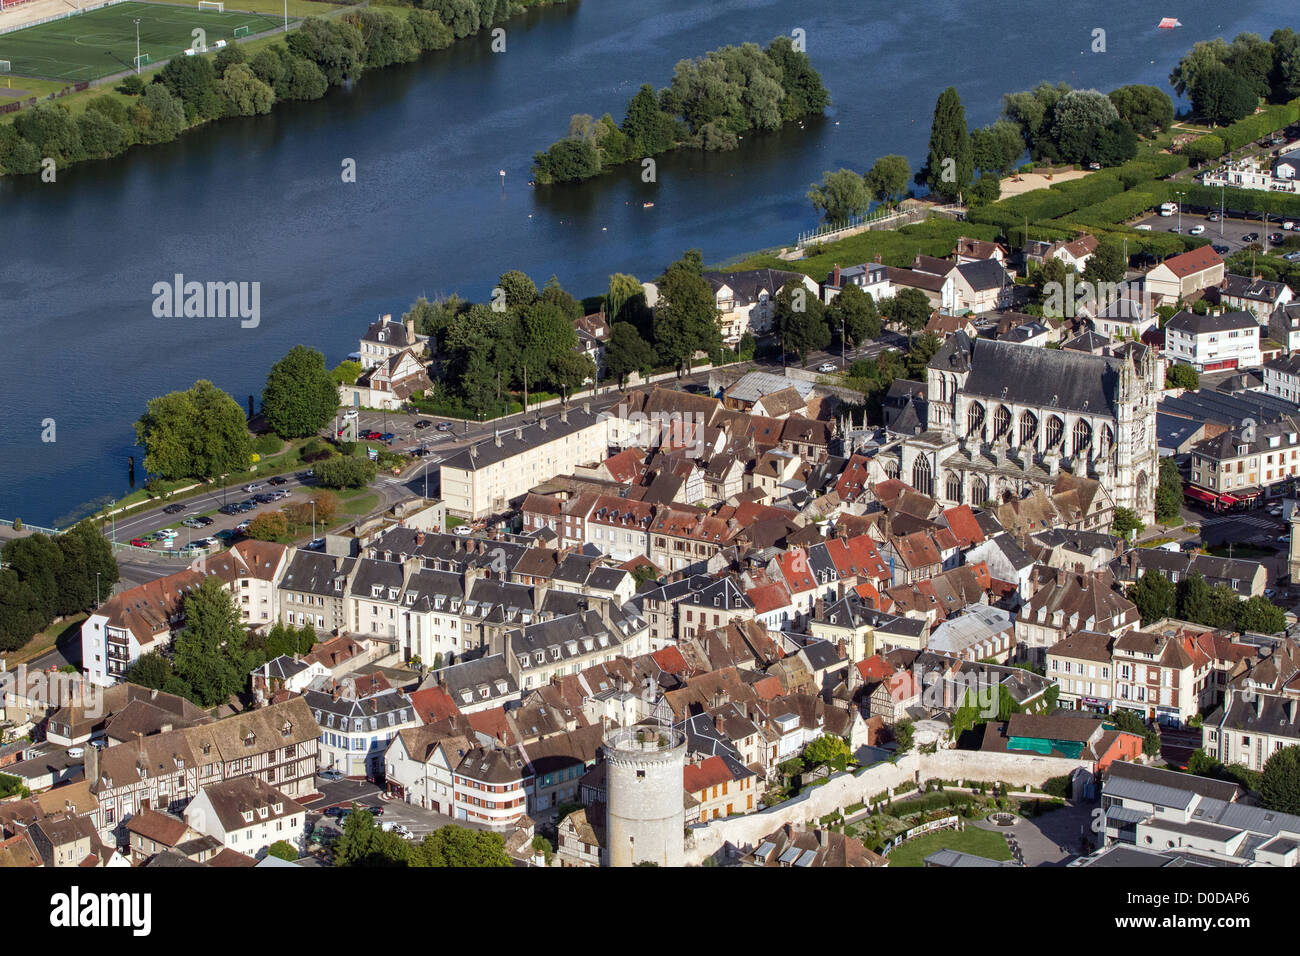 THE TOWN OF VERNON ON THE BANKS OF THE SEINE WITH ITS COLLEGIATE CHURCH OF NOTRE-DAME EURE (27) NORMANDY FRANCE - Stock Image